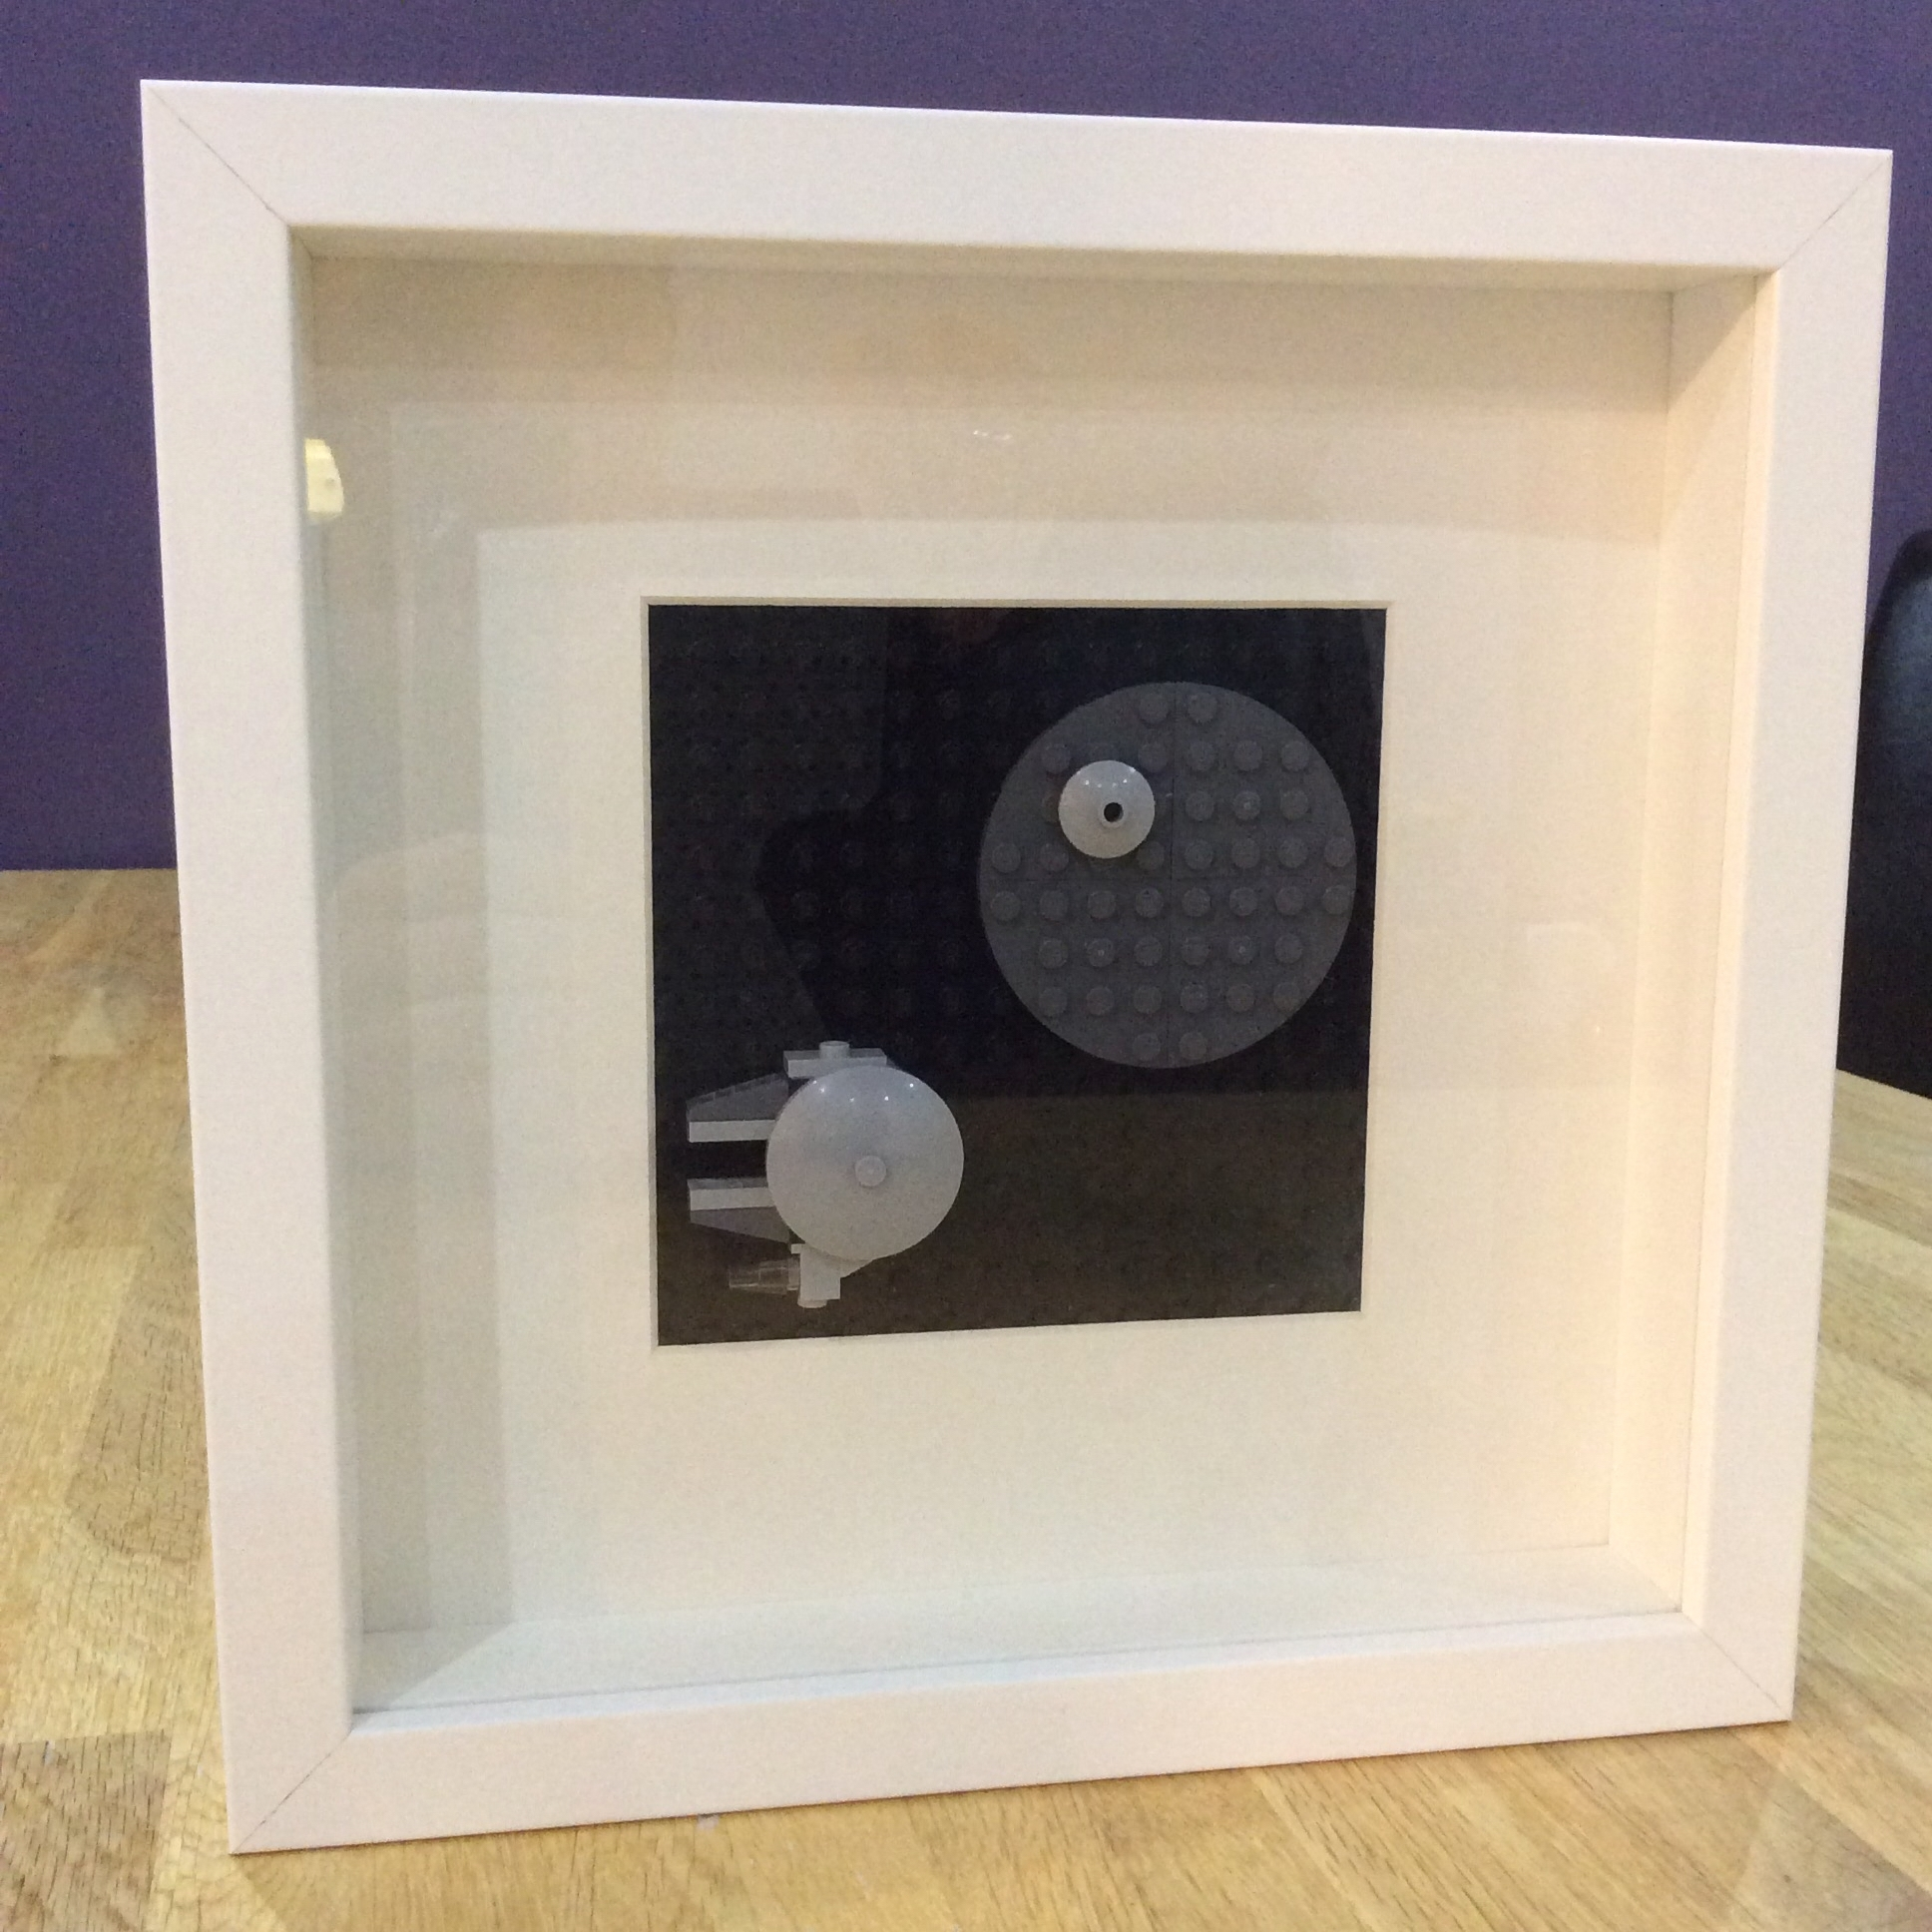 Lego Wall Art #starwars (Using Ikea Ribba Frame) (View 6 of 15)